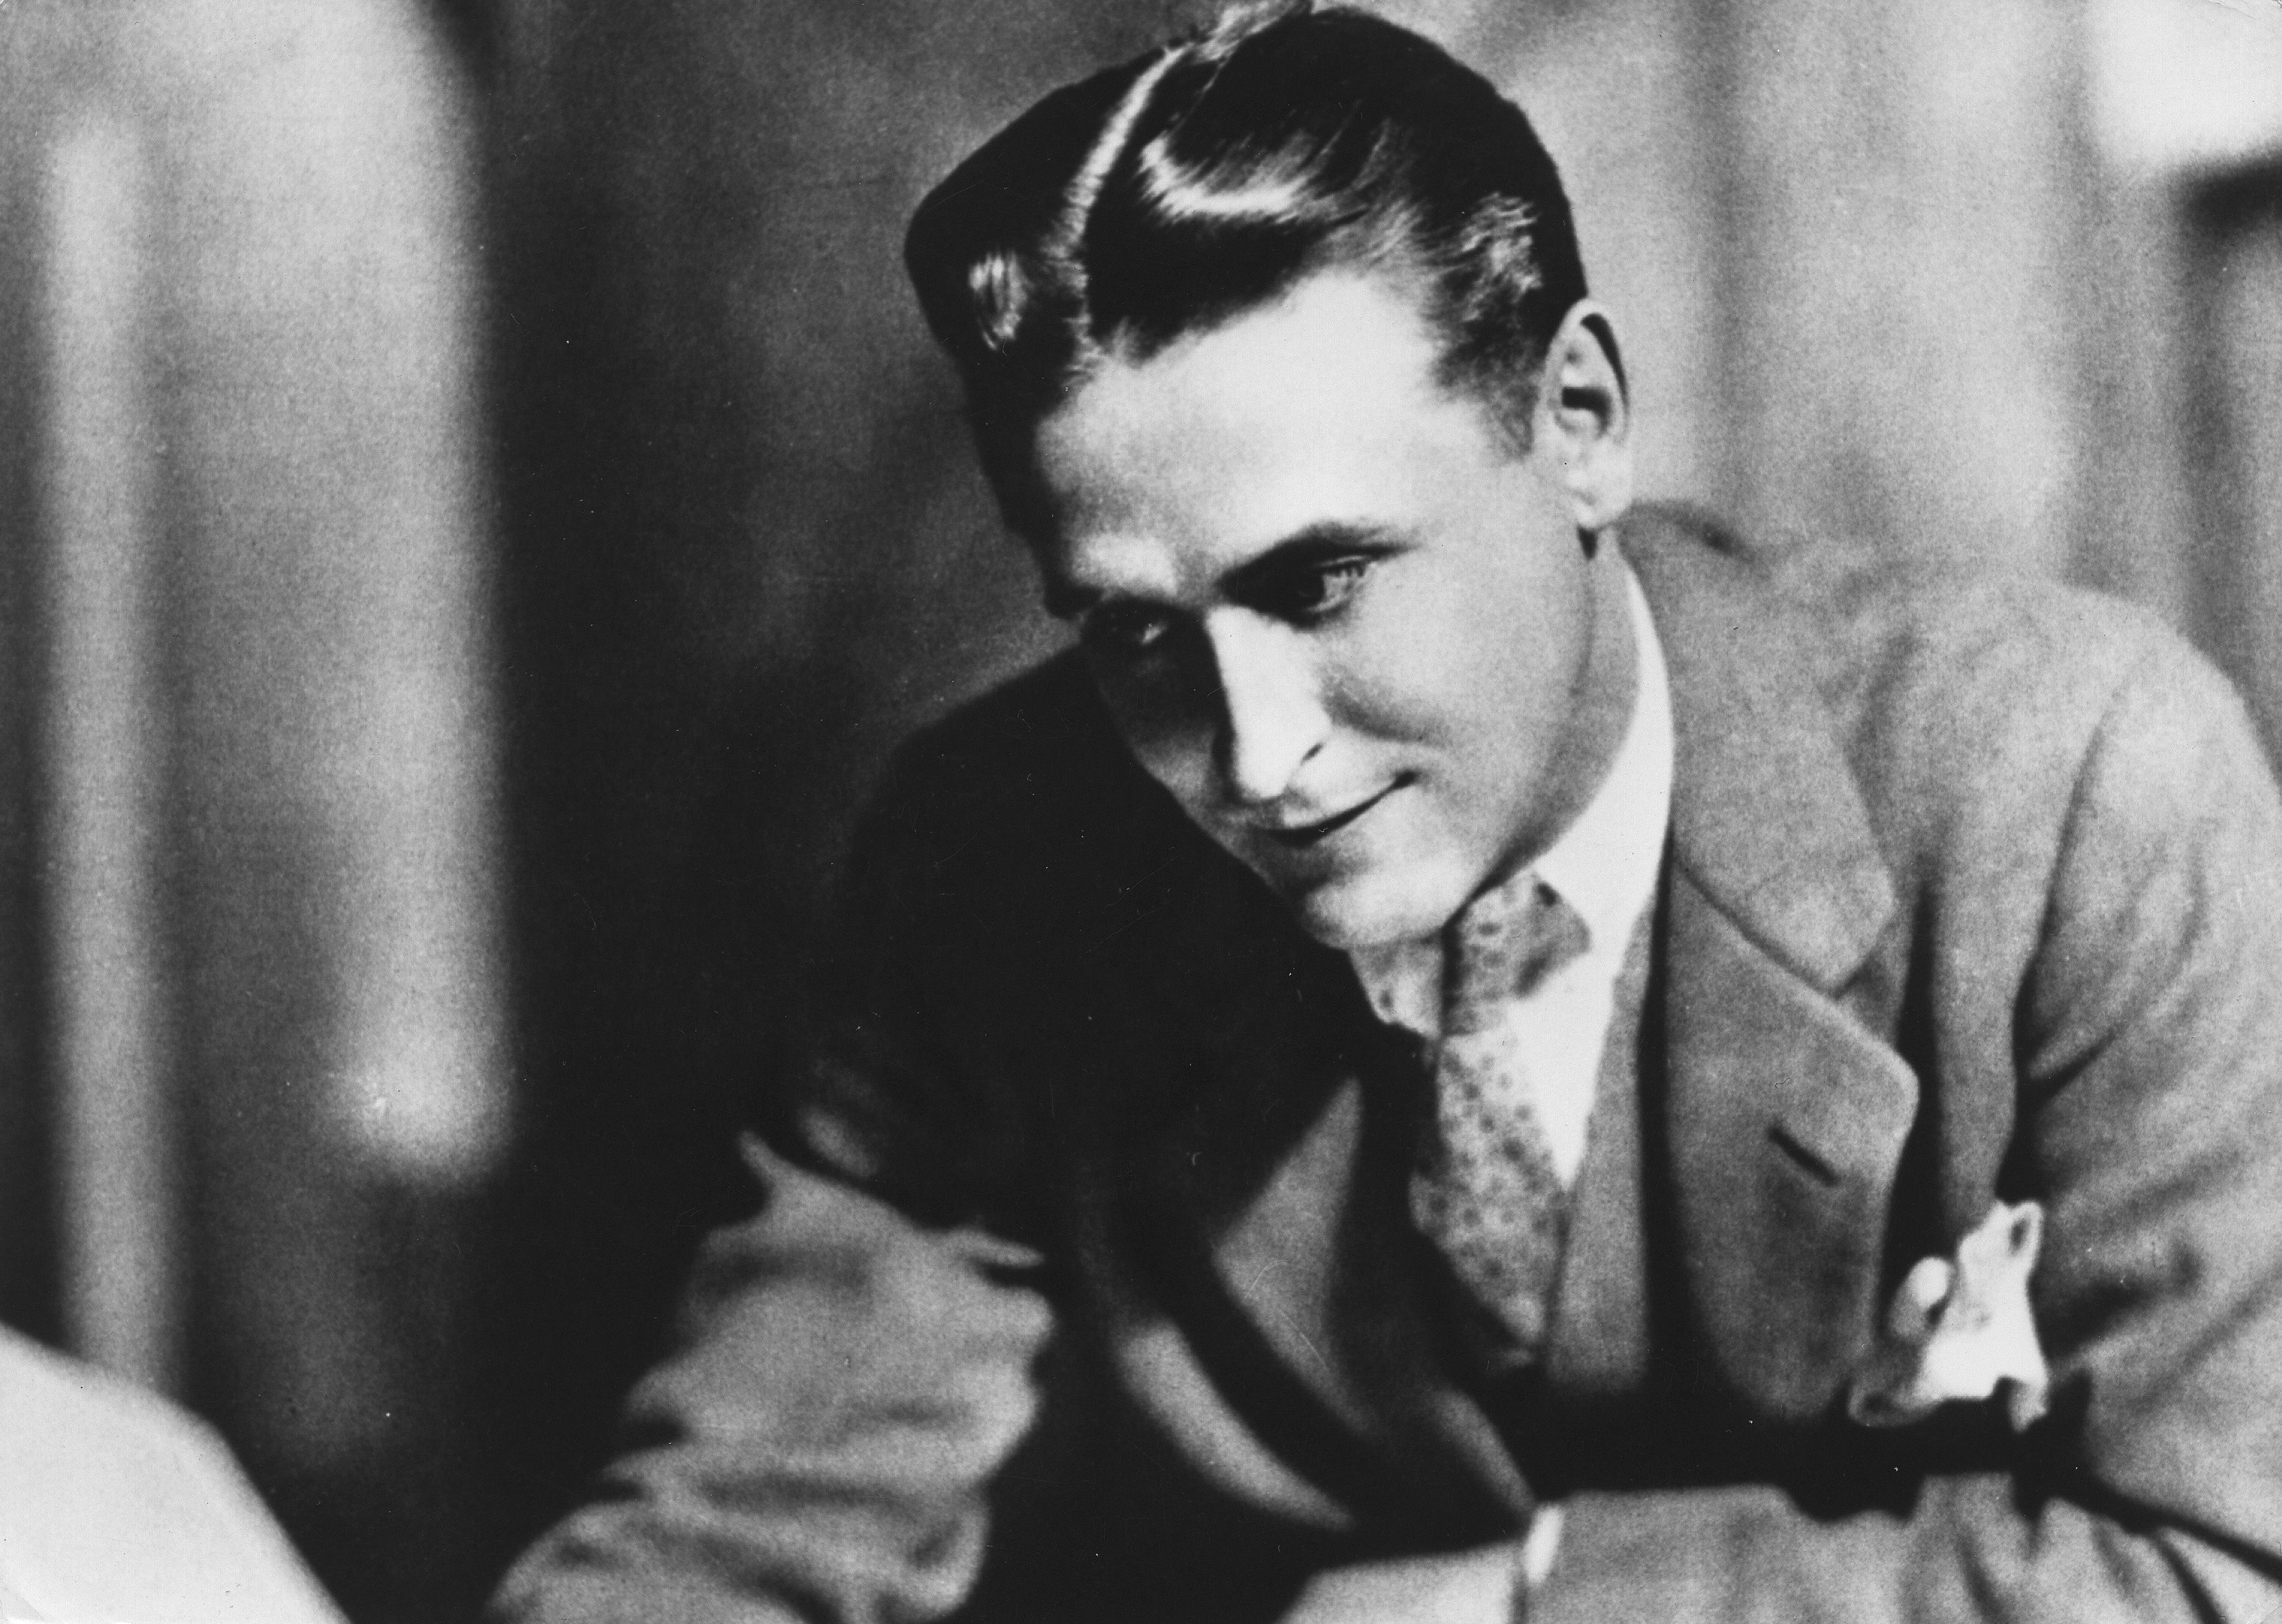 f scott fitzgerald facts things you didn t know about f scott f scott fitzgerald facts things you didn t know about f scott fitzgerald